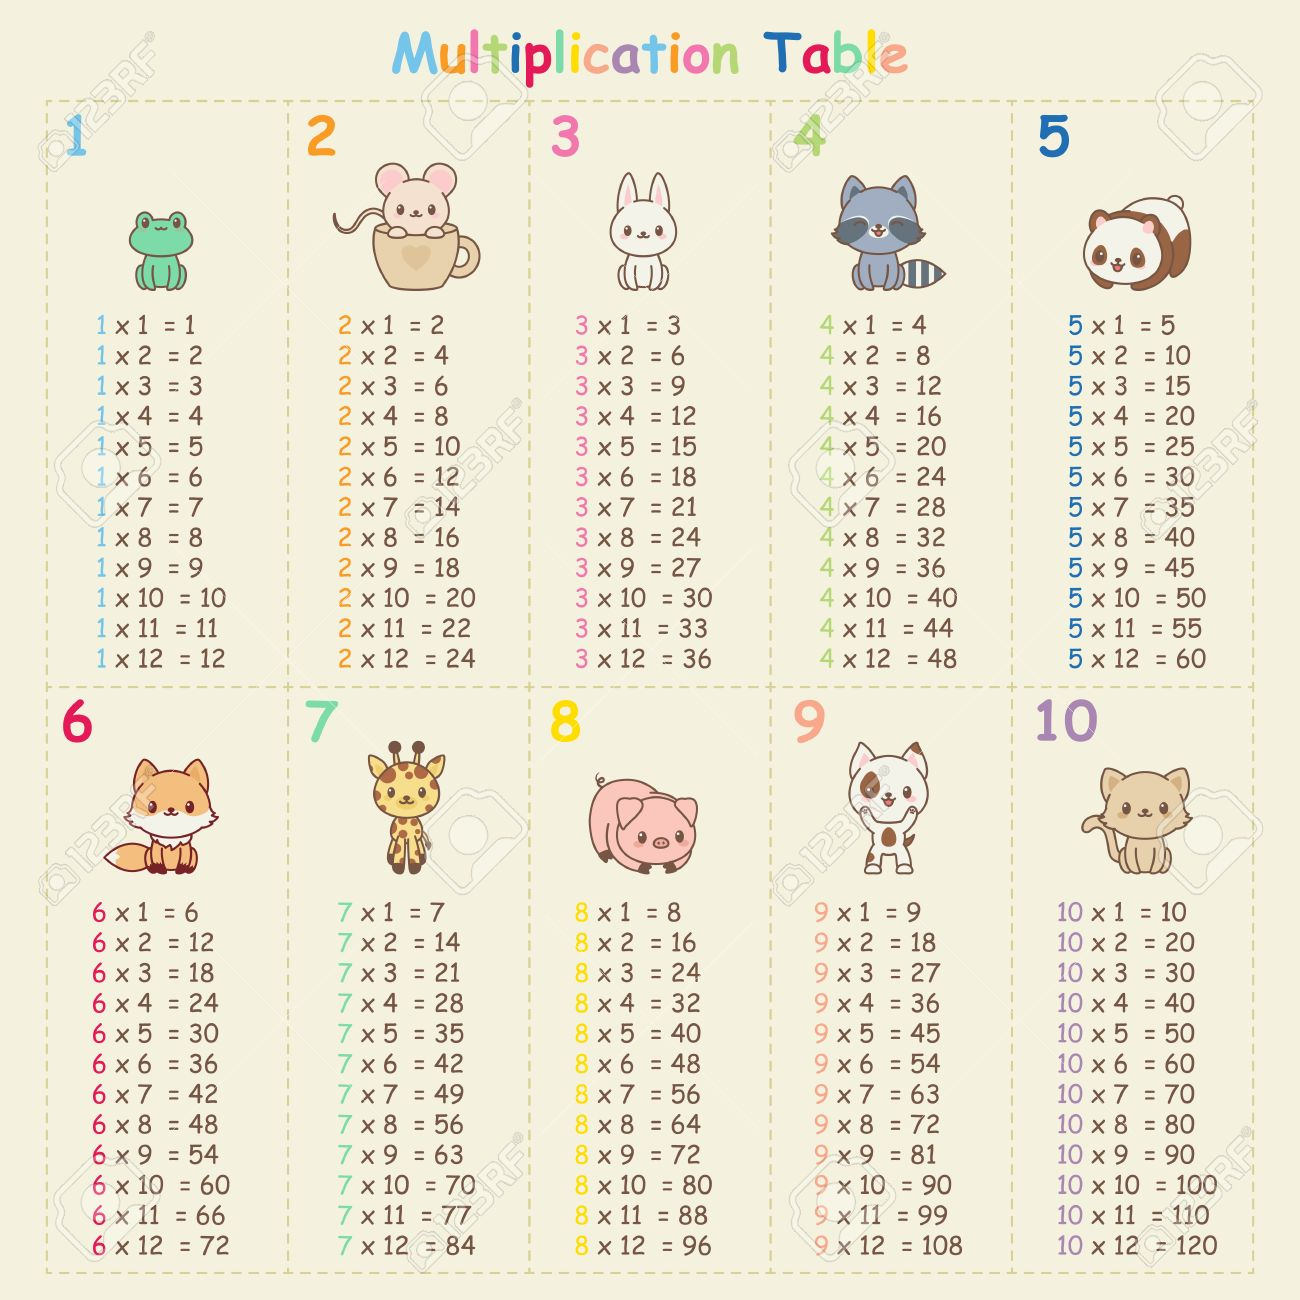 Multiplication table with cute kawaii animals educational art multiplication table with cute kawaii animals educational art for children vector illustration stock vector gamestrikefo Choice Image